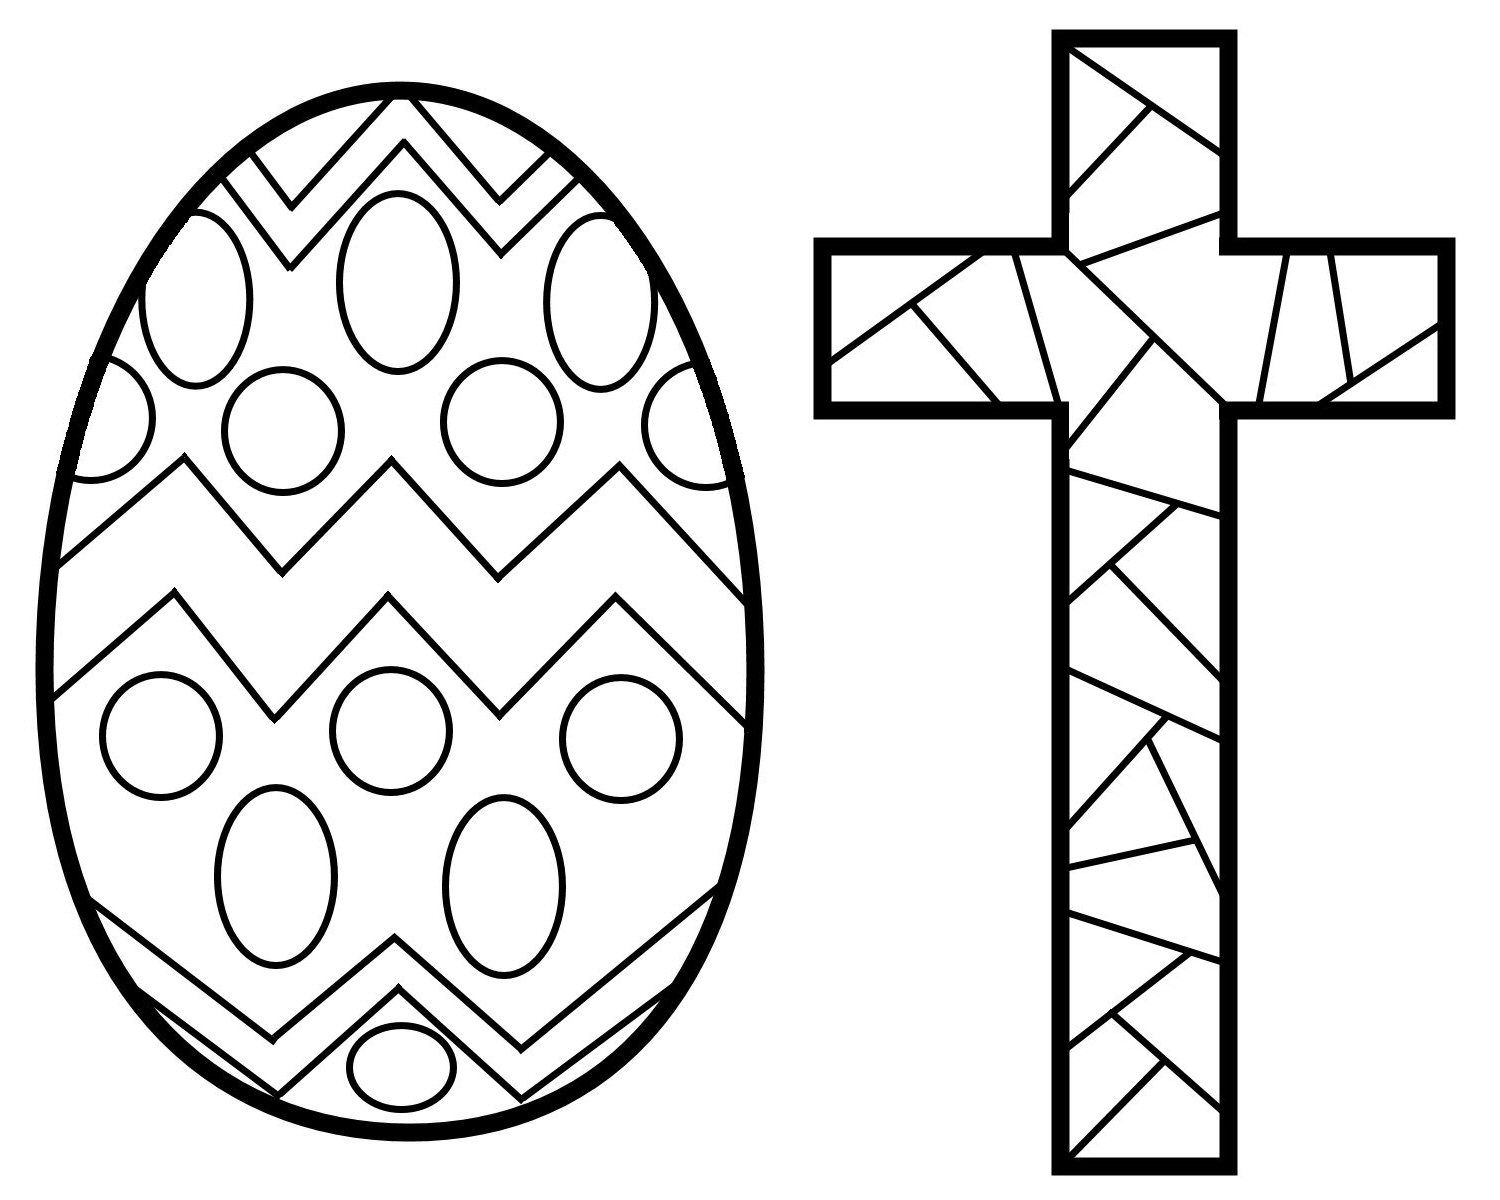 1500x1200 Free Printable Stained Glass Patterns Step 2 Templates